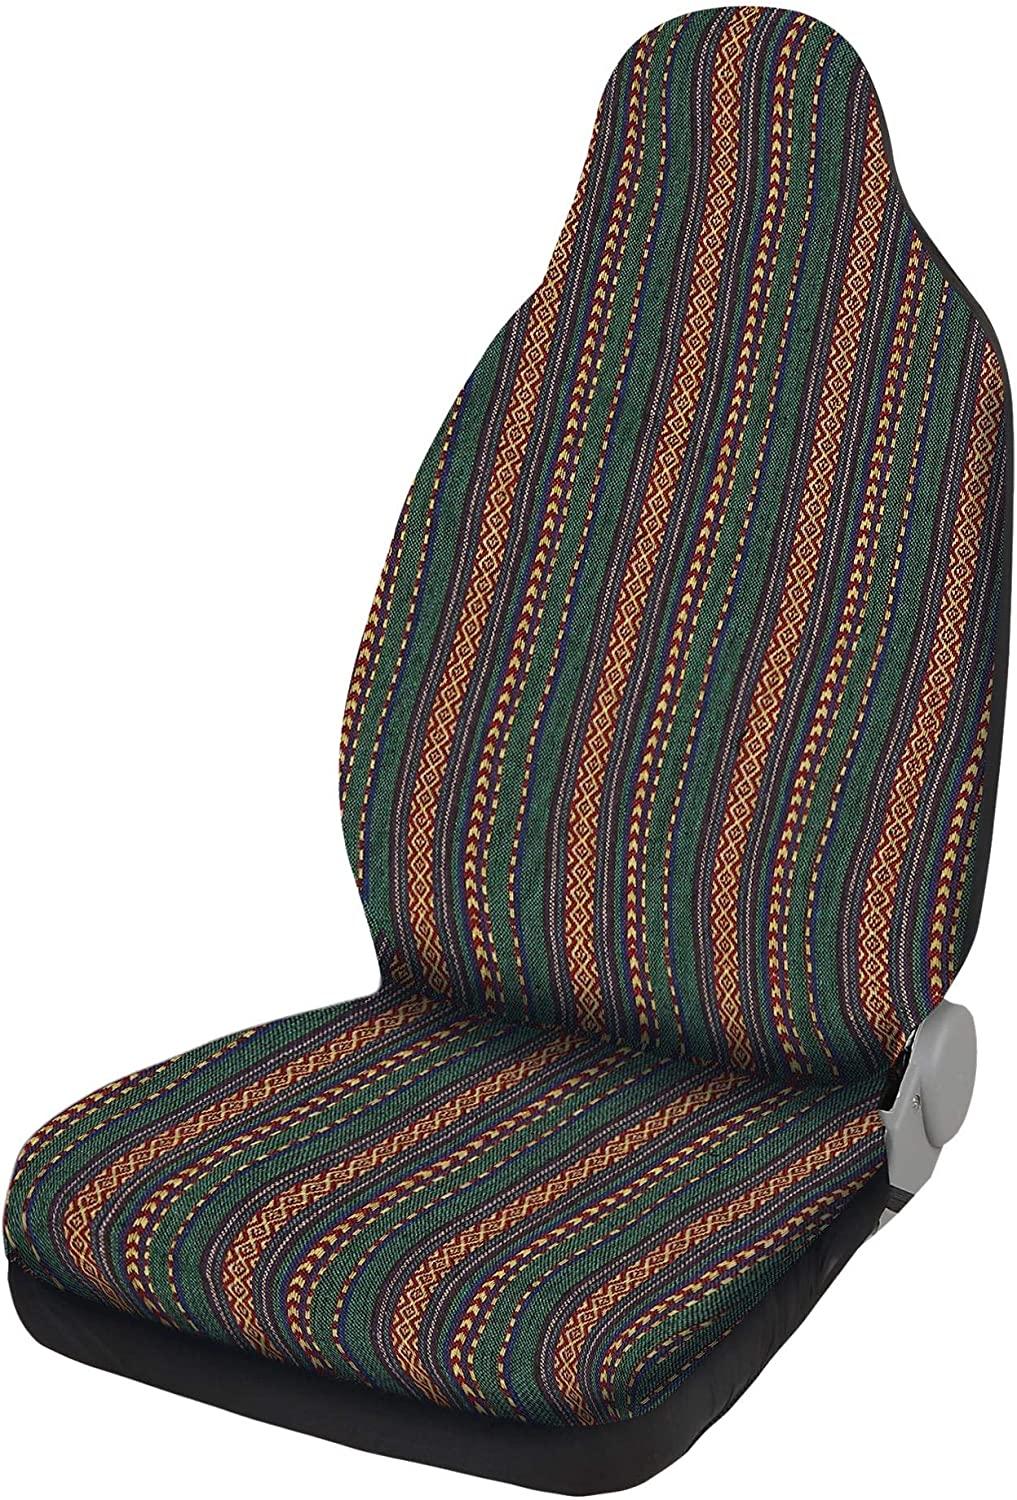 X AUTOHAUX Universal Green Front Seat Covers Car Blanket Seat Covers Bohemian Style Seat Cover for Car SUV Truck